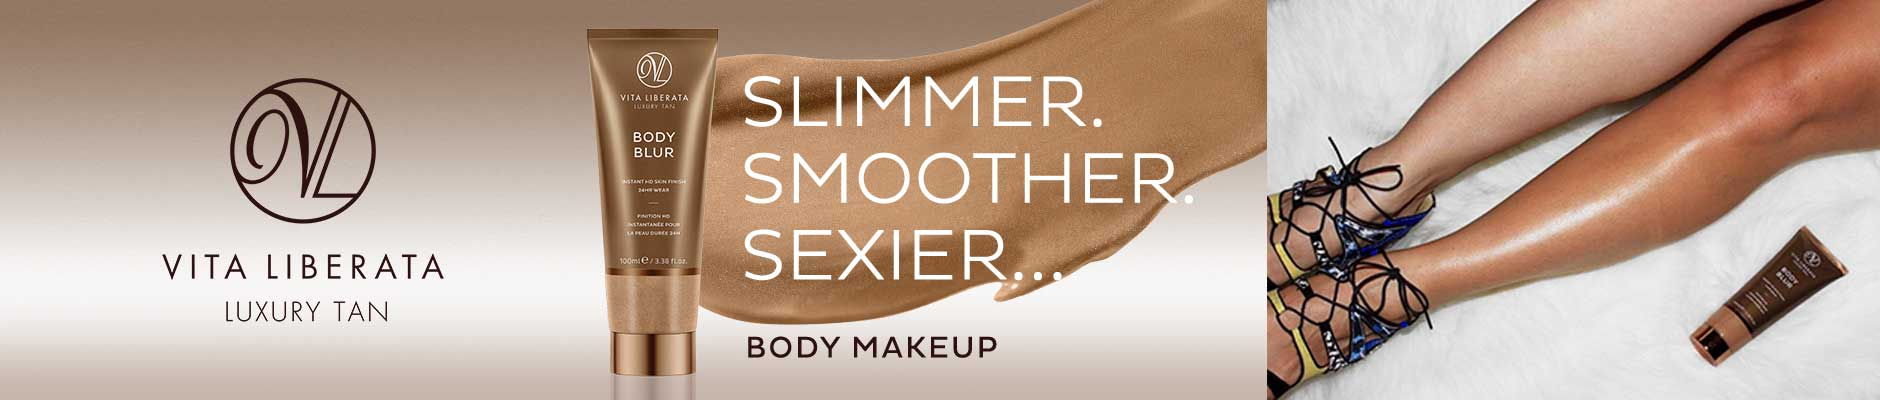 Vita Liberata: Luxury Tan - Slimmer. Smoother. Sexier... Body Makeup